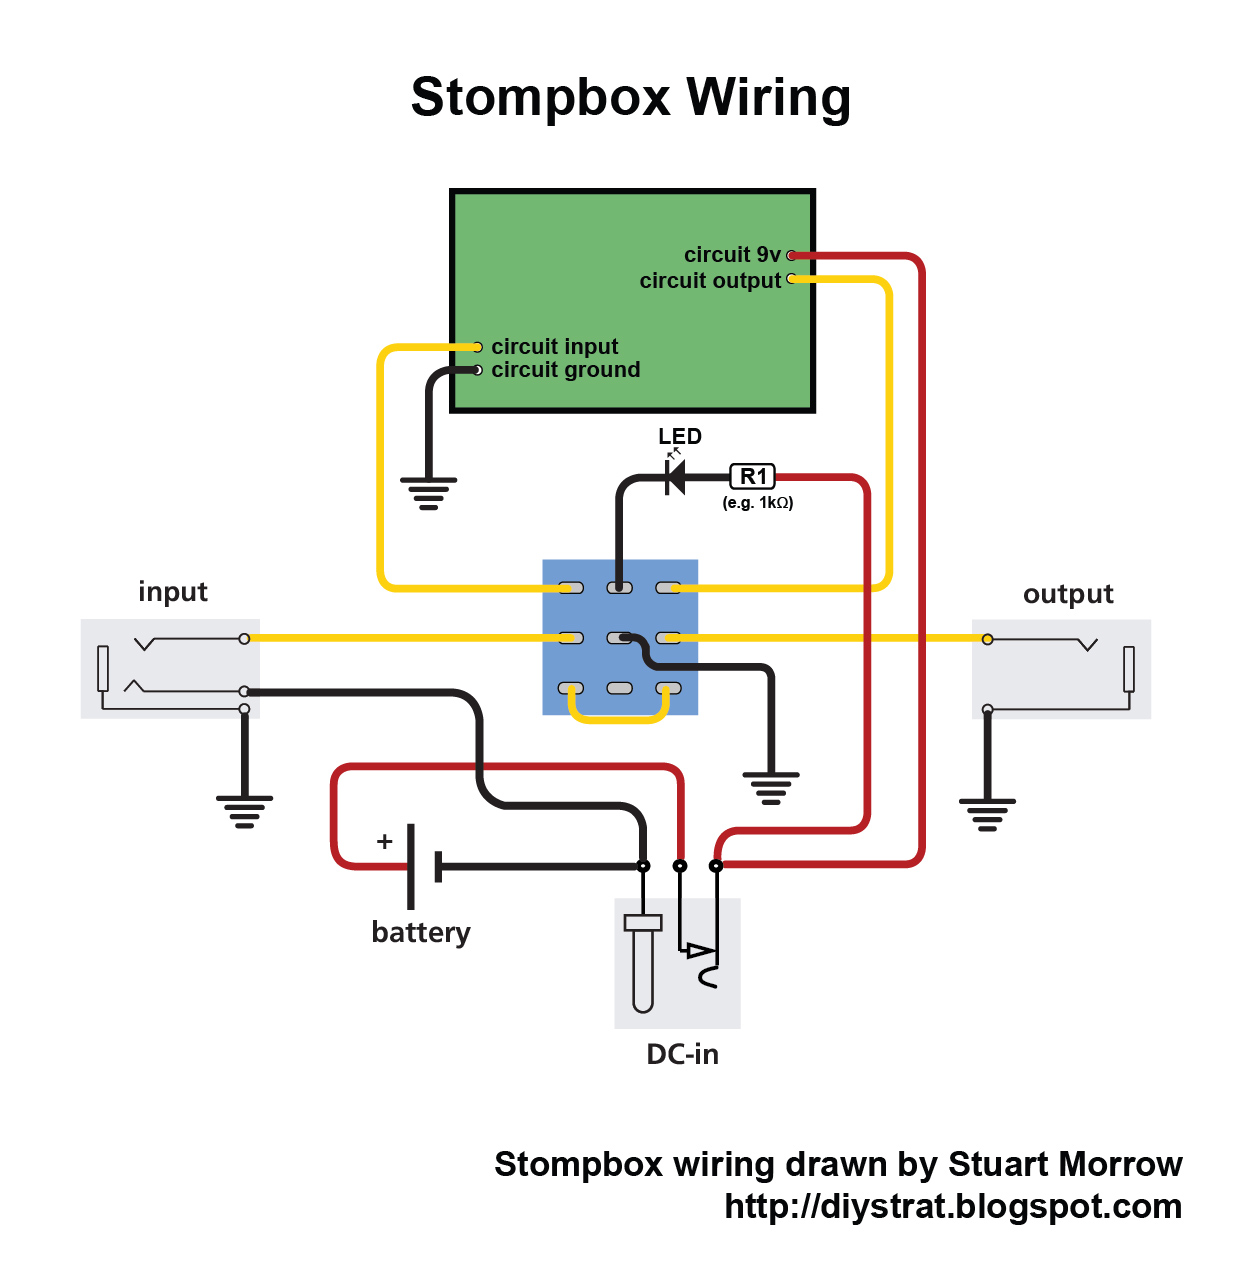 For Pedal Wiring Diagram Without Battery Electrical House Bank How To Wire Up A Stomp Box Effects Diy Strat And Other Rh Diystrat Blogspot Com 12 Volt Dual